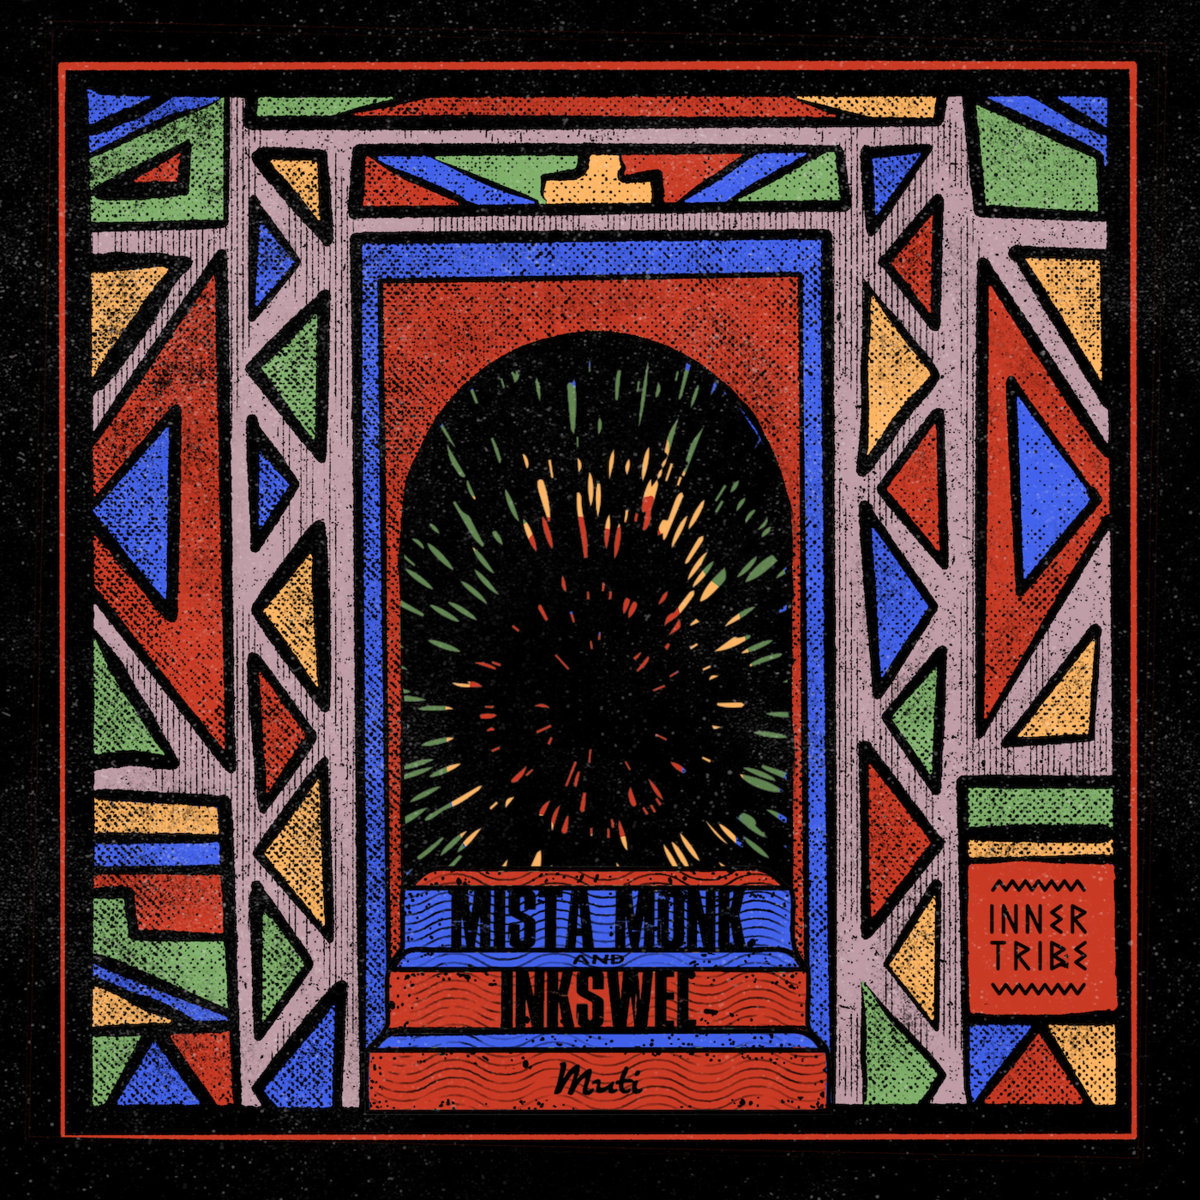 First Find: Mista Monk & Inkswel – Mind Zone feat. Pugs Atomz, Lord Lobe, Illa J & Planetself